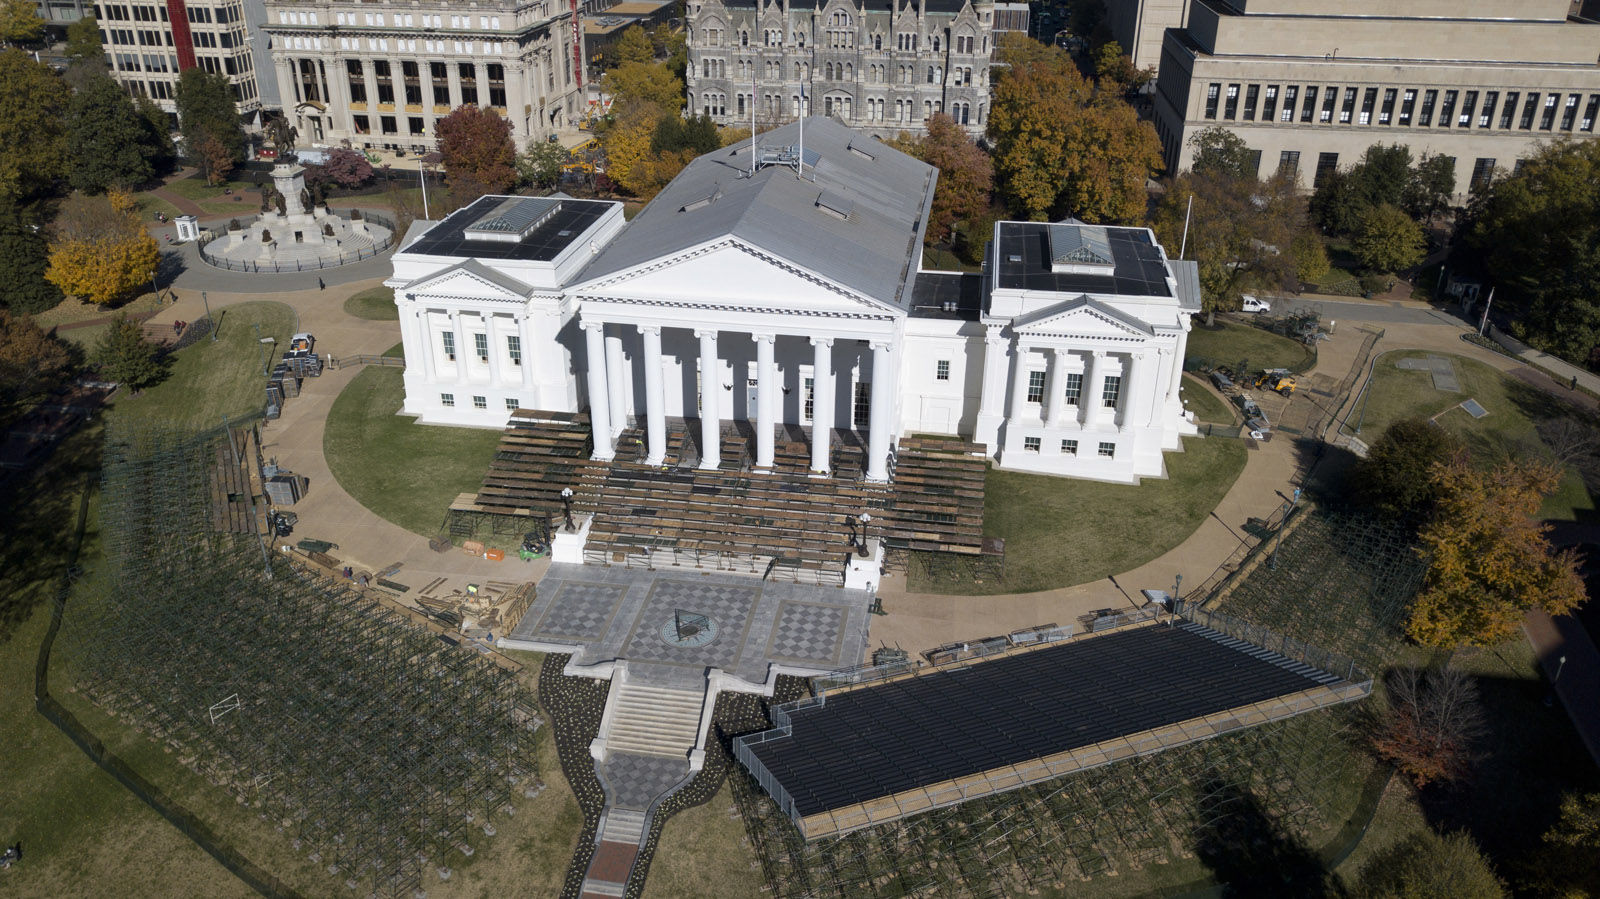 Bleachers and a reviewing stand are erected in preparation for the January inauguration of Virginia Governor-elect Ralph Northam at the Capitol in Richmond, Va., Monday, Nov. 20, 2017. (AP Photo/Steve Helber)